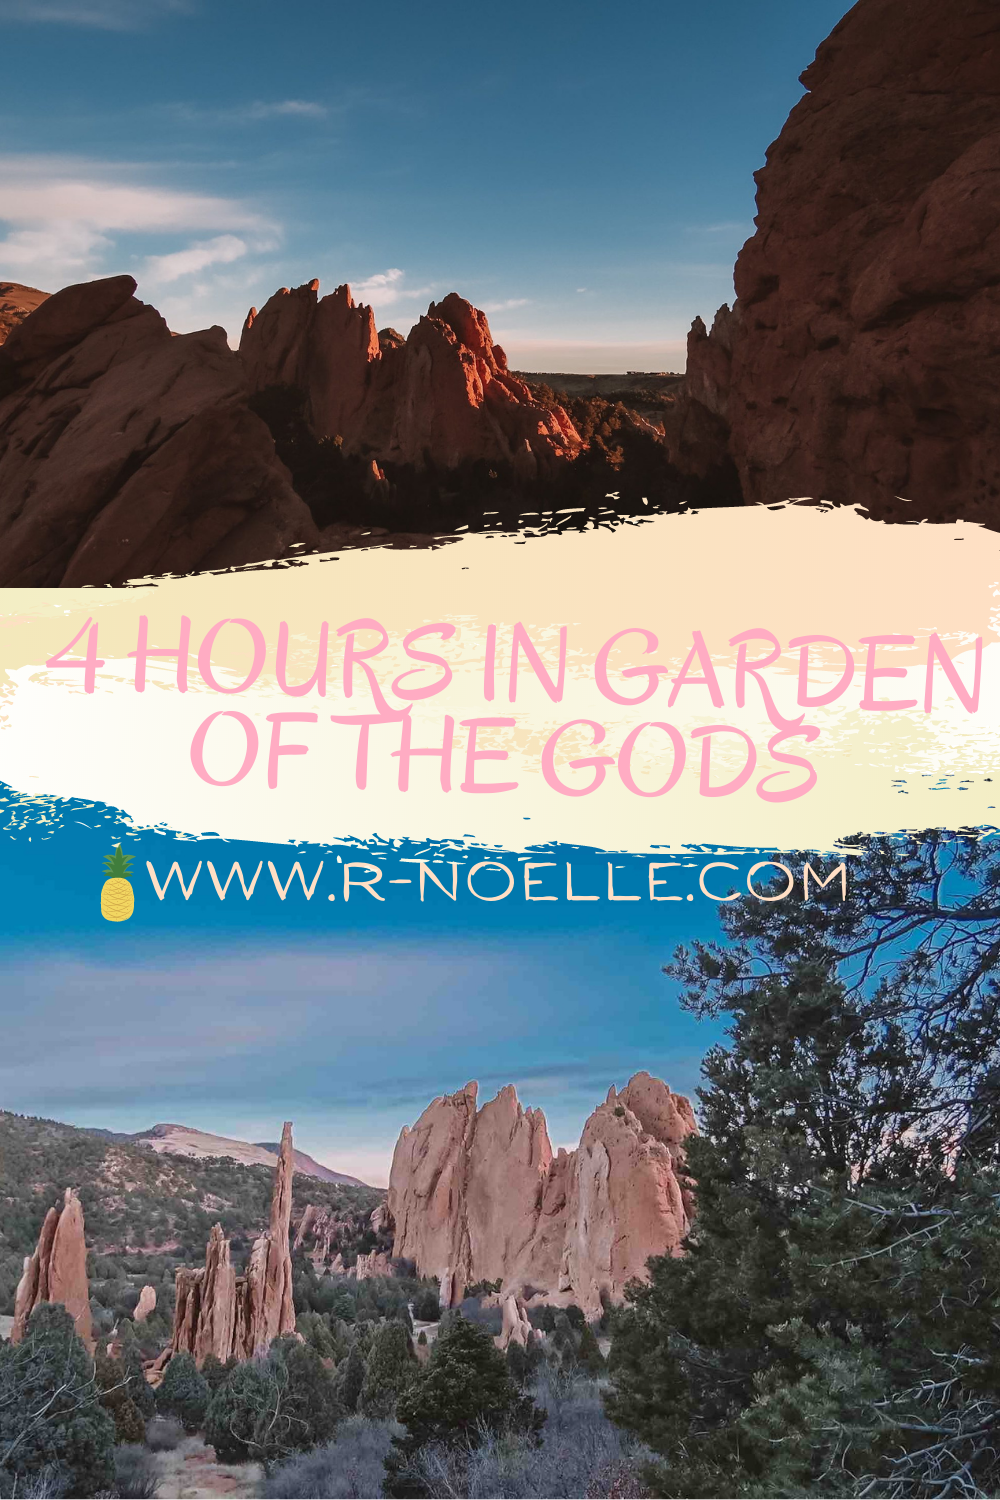 Here is a guide for having a limited time for visiting the Garden of the Gods. This hidden treasure in Colorado Springs, Colorado. I recommend going for sunrise to this free park.